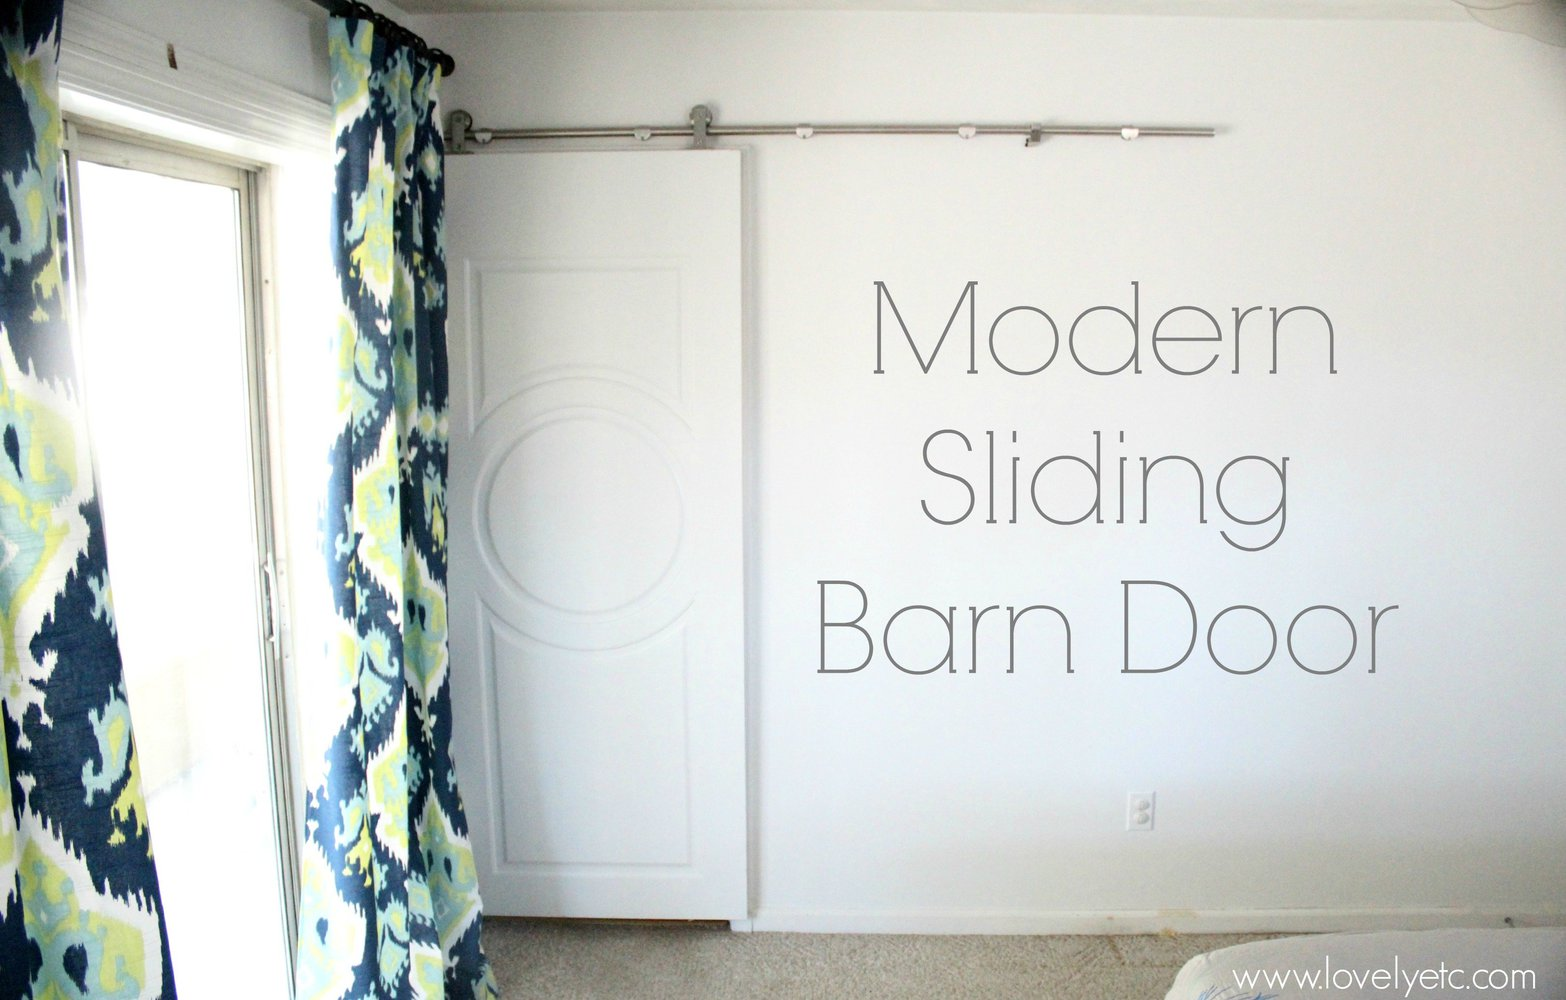 Our Modern Sliding Barn Door